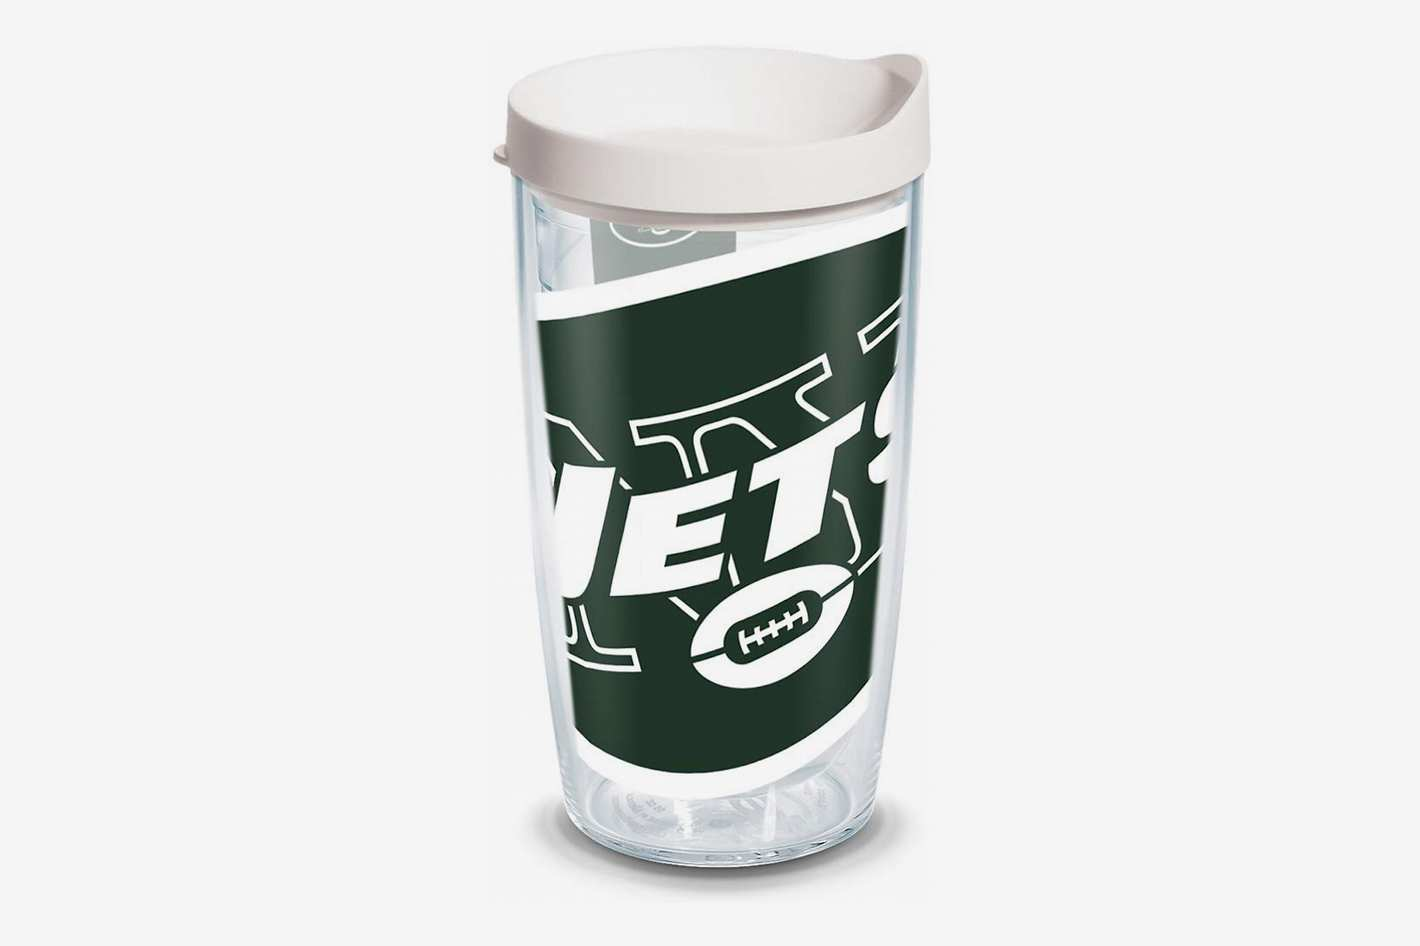 Tervis NFL New York Jets Colossal Tumbler with Wrap and White Lid